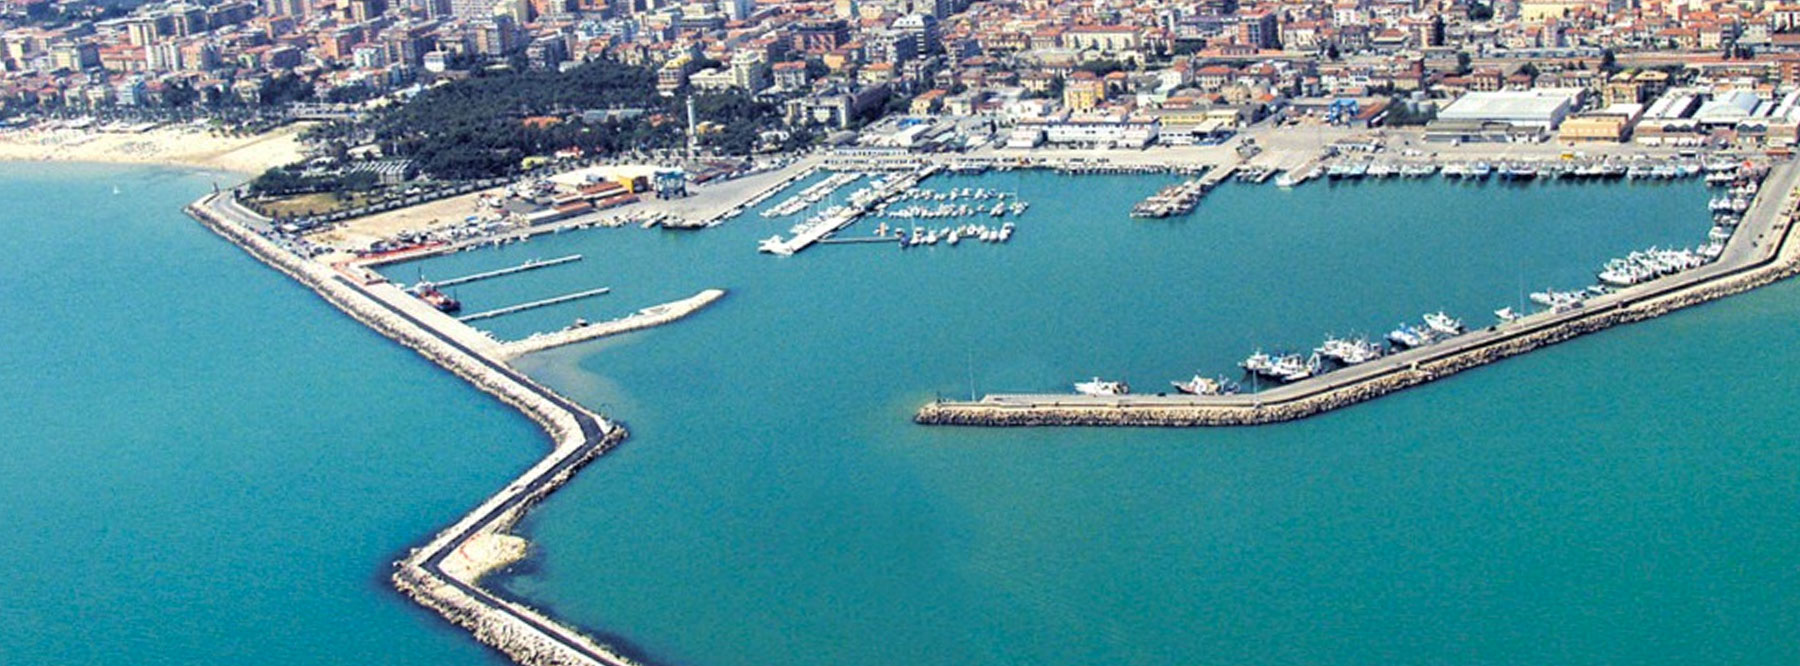 Port of San Benedetto del Tronto